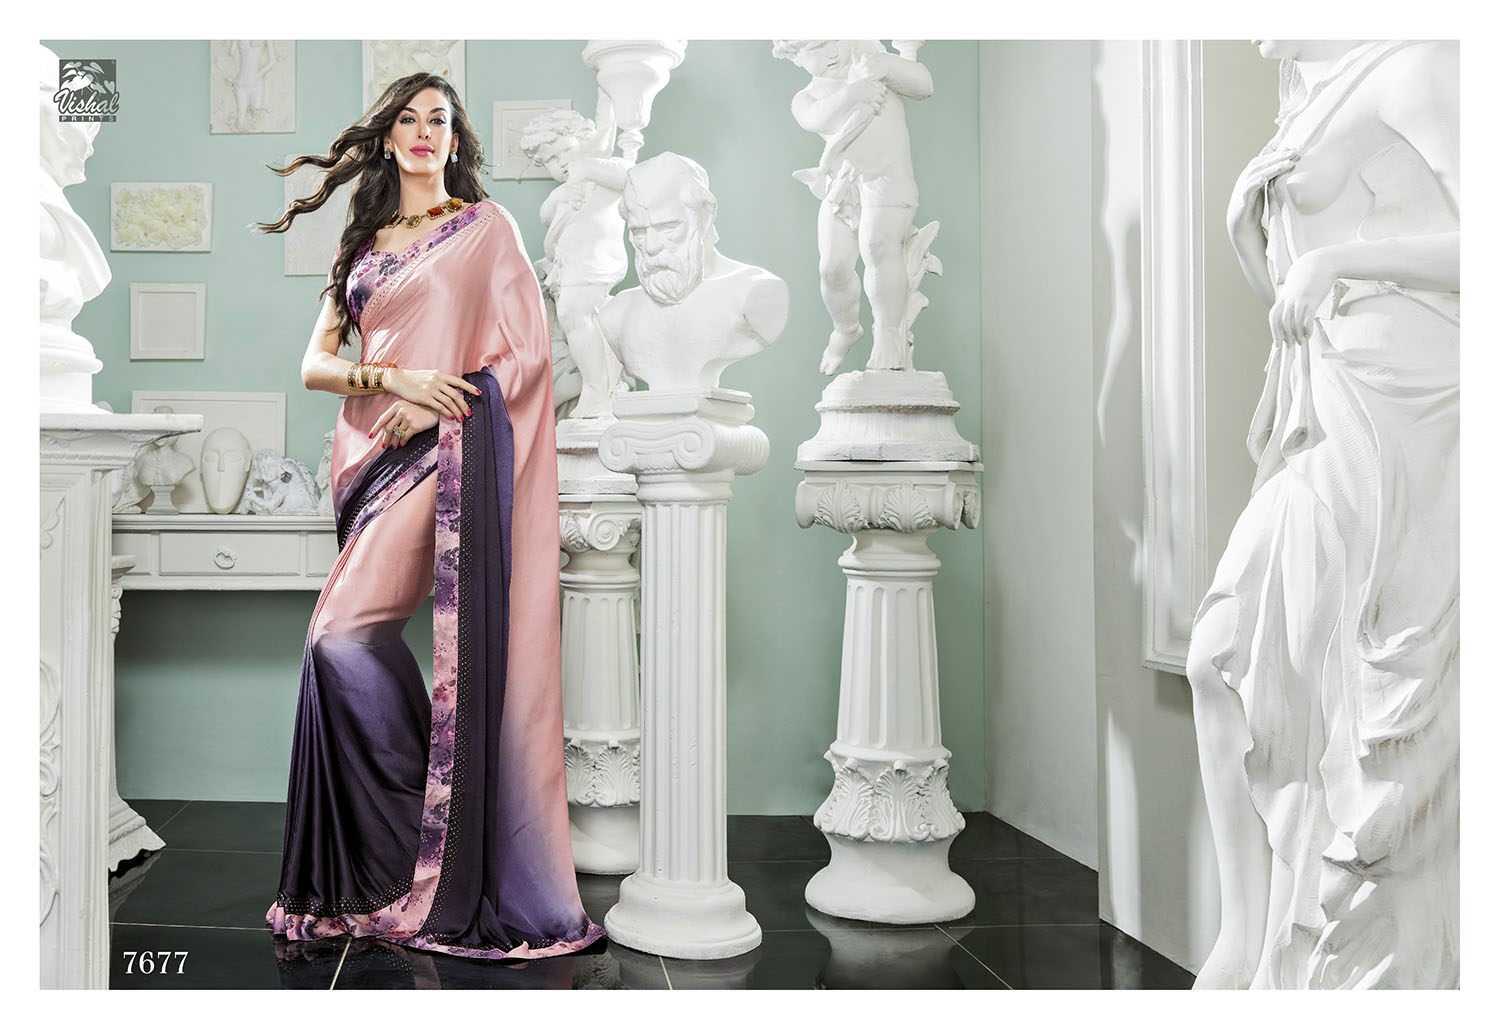 D'Amore – New Party Wear Collection Of Designer Saree